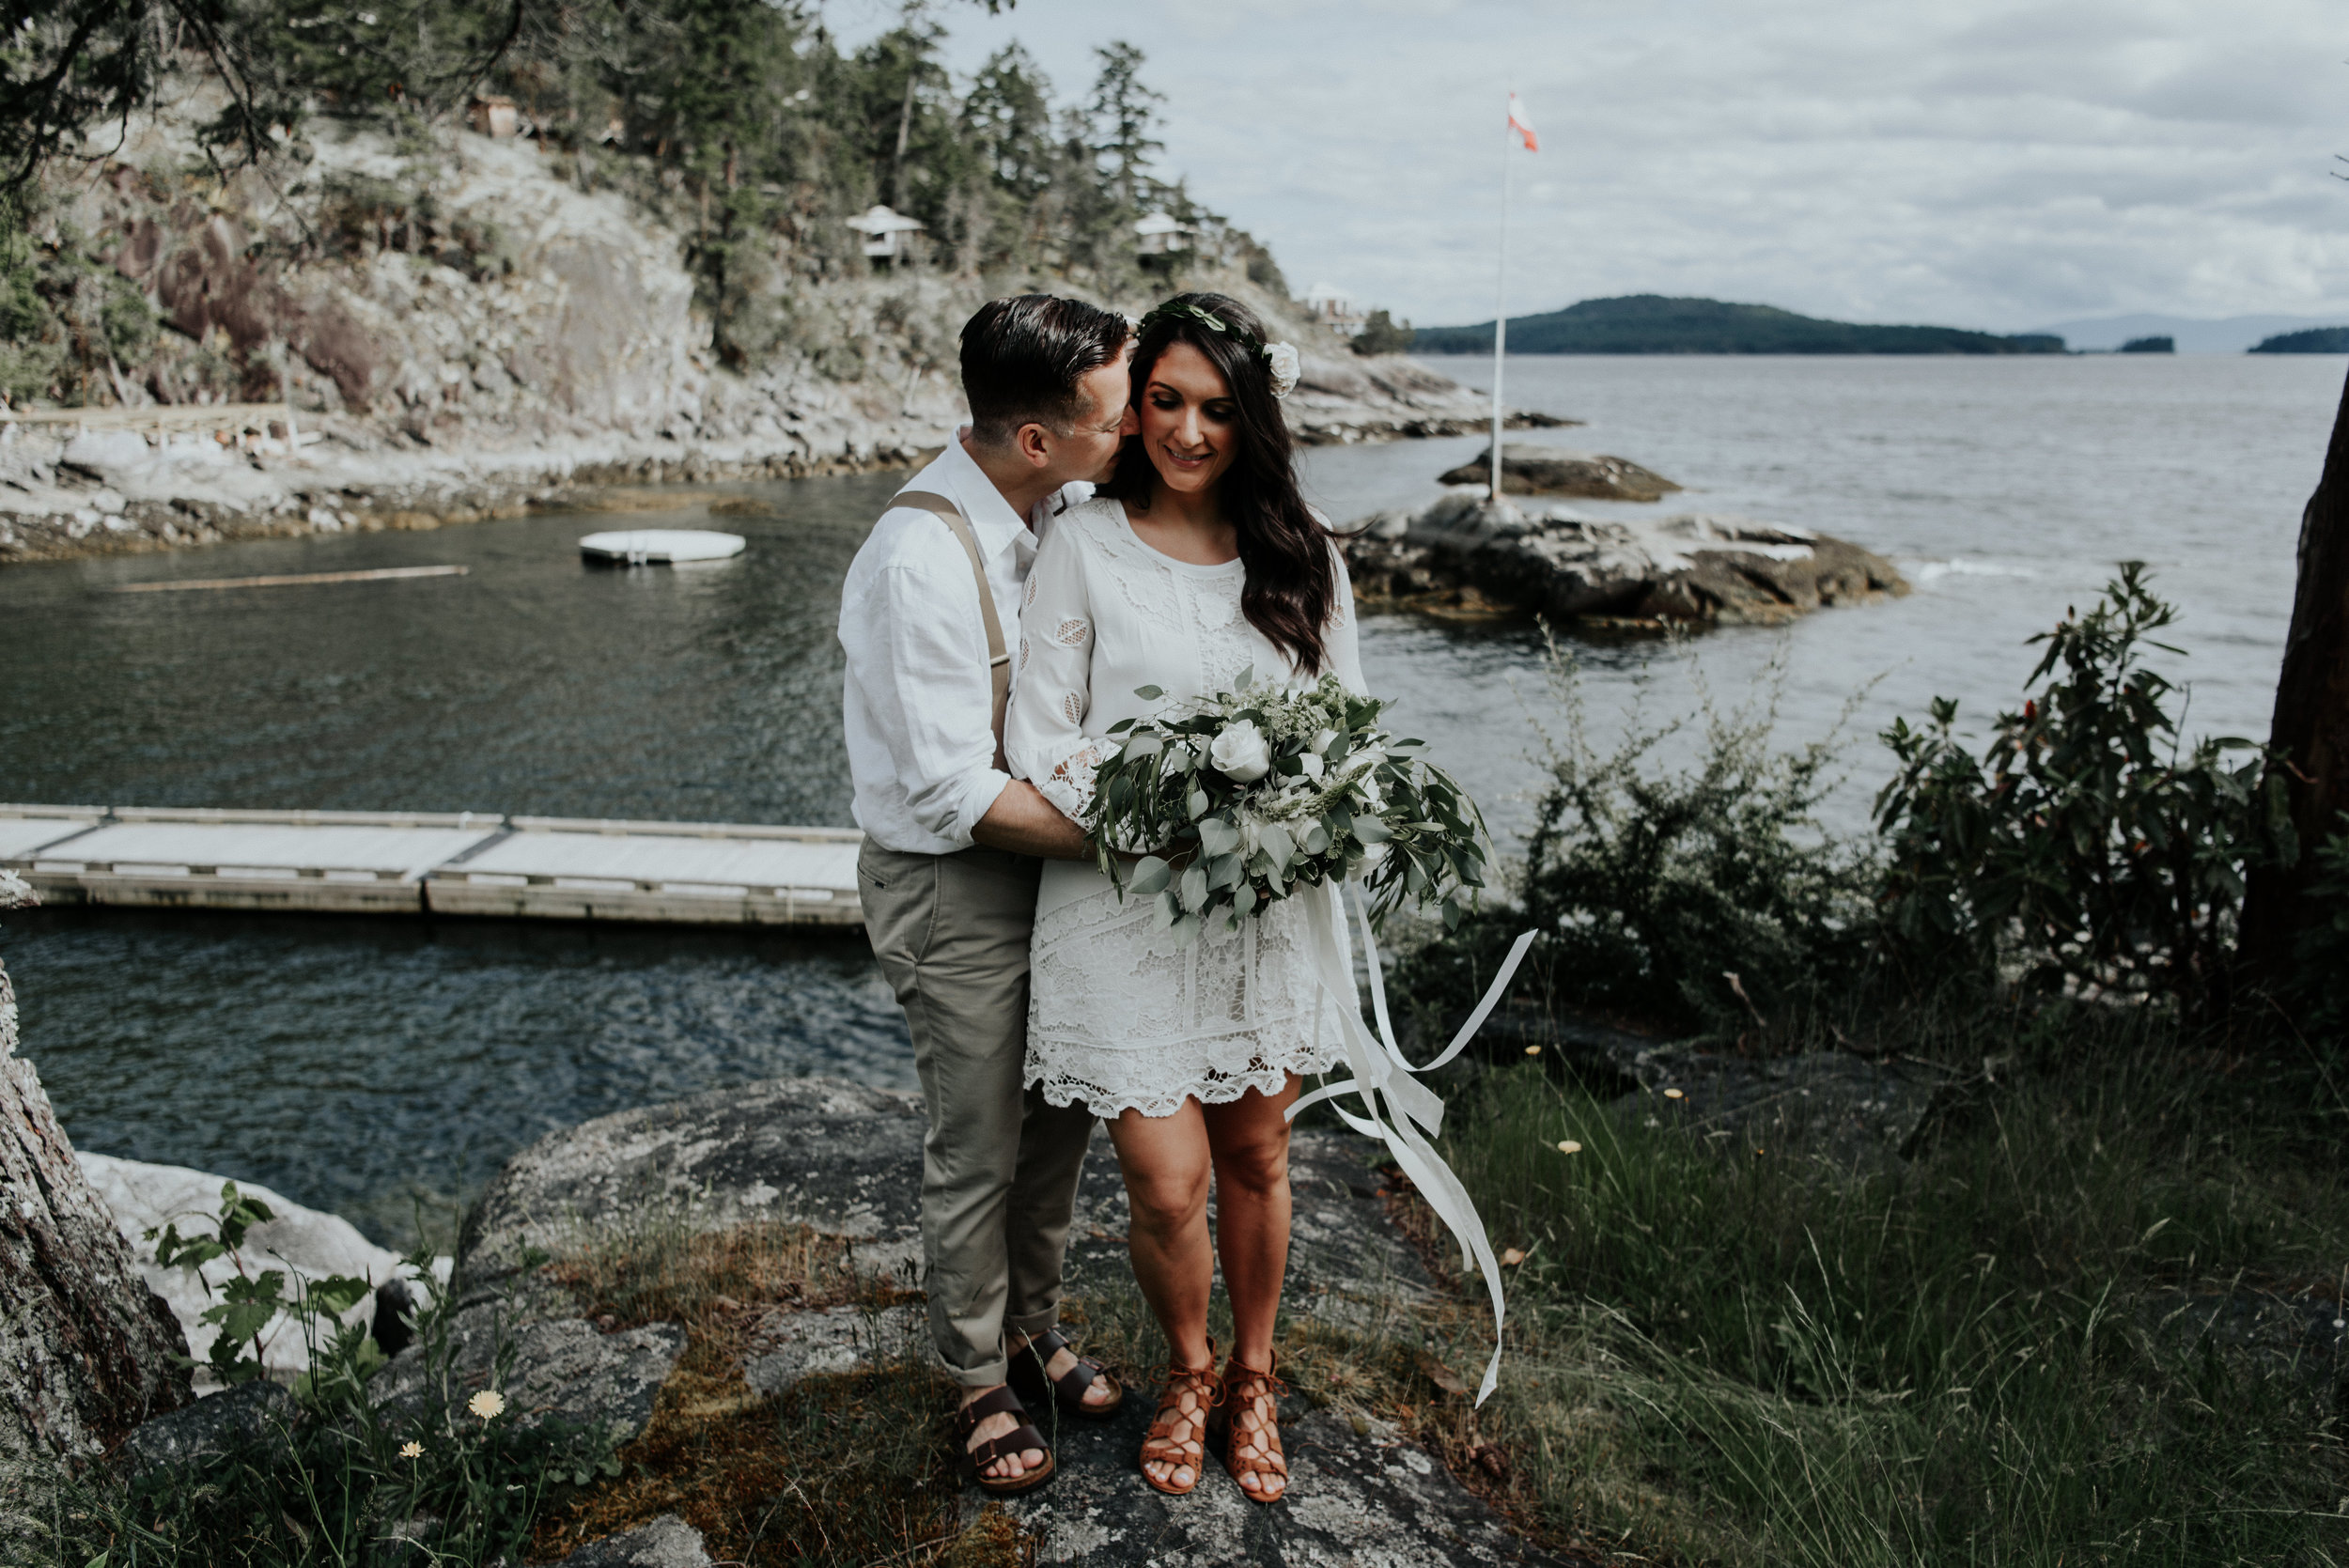 Ashley + Jeff - Rockwater Resort Elopement - Sunshine Coast BC Photographer - Laura Olson Photography-4115.jpg